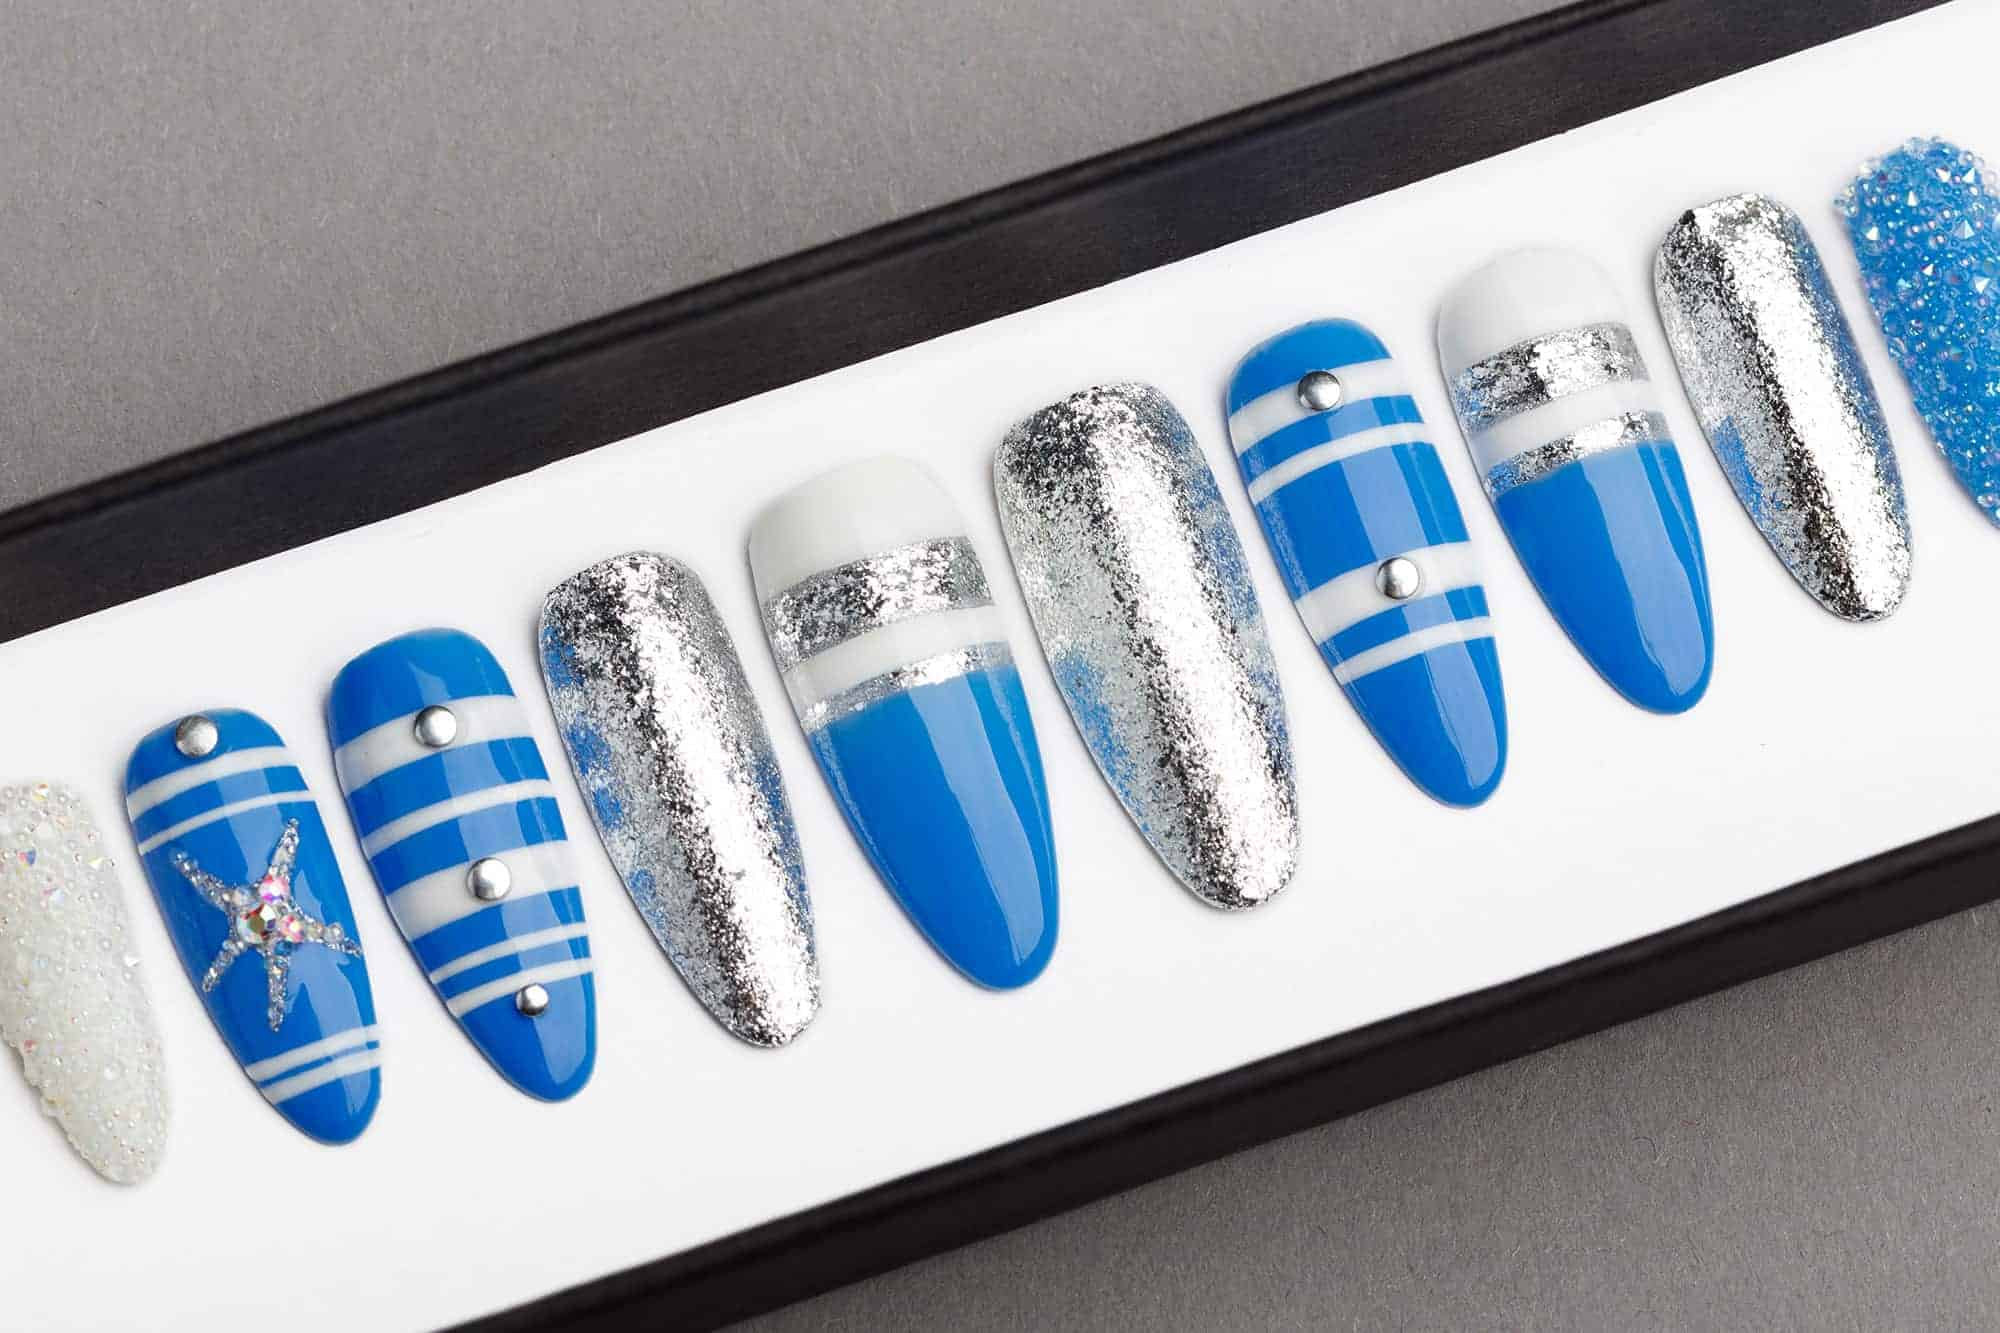 Blue Ocean Press on Nails with Glitters